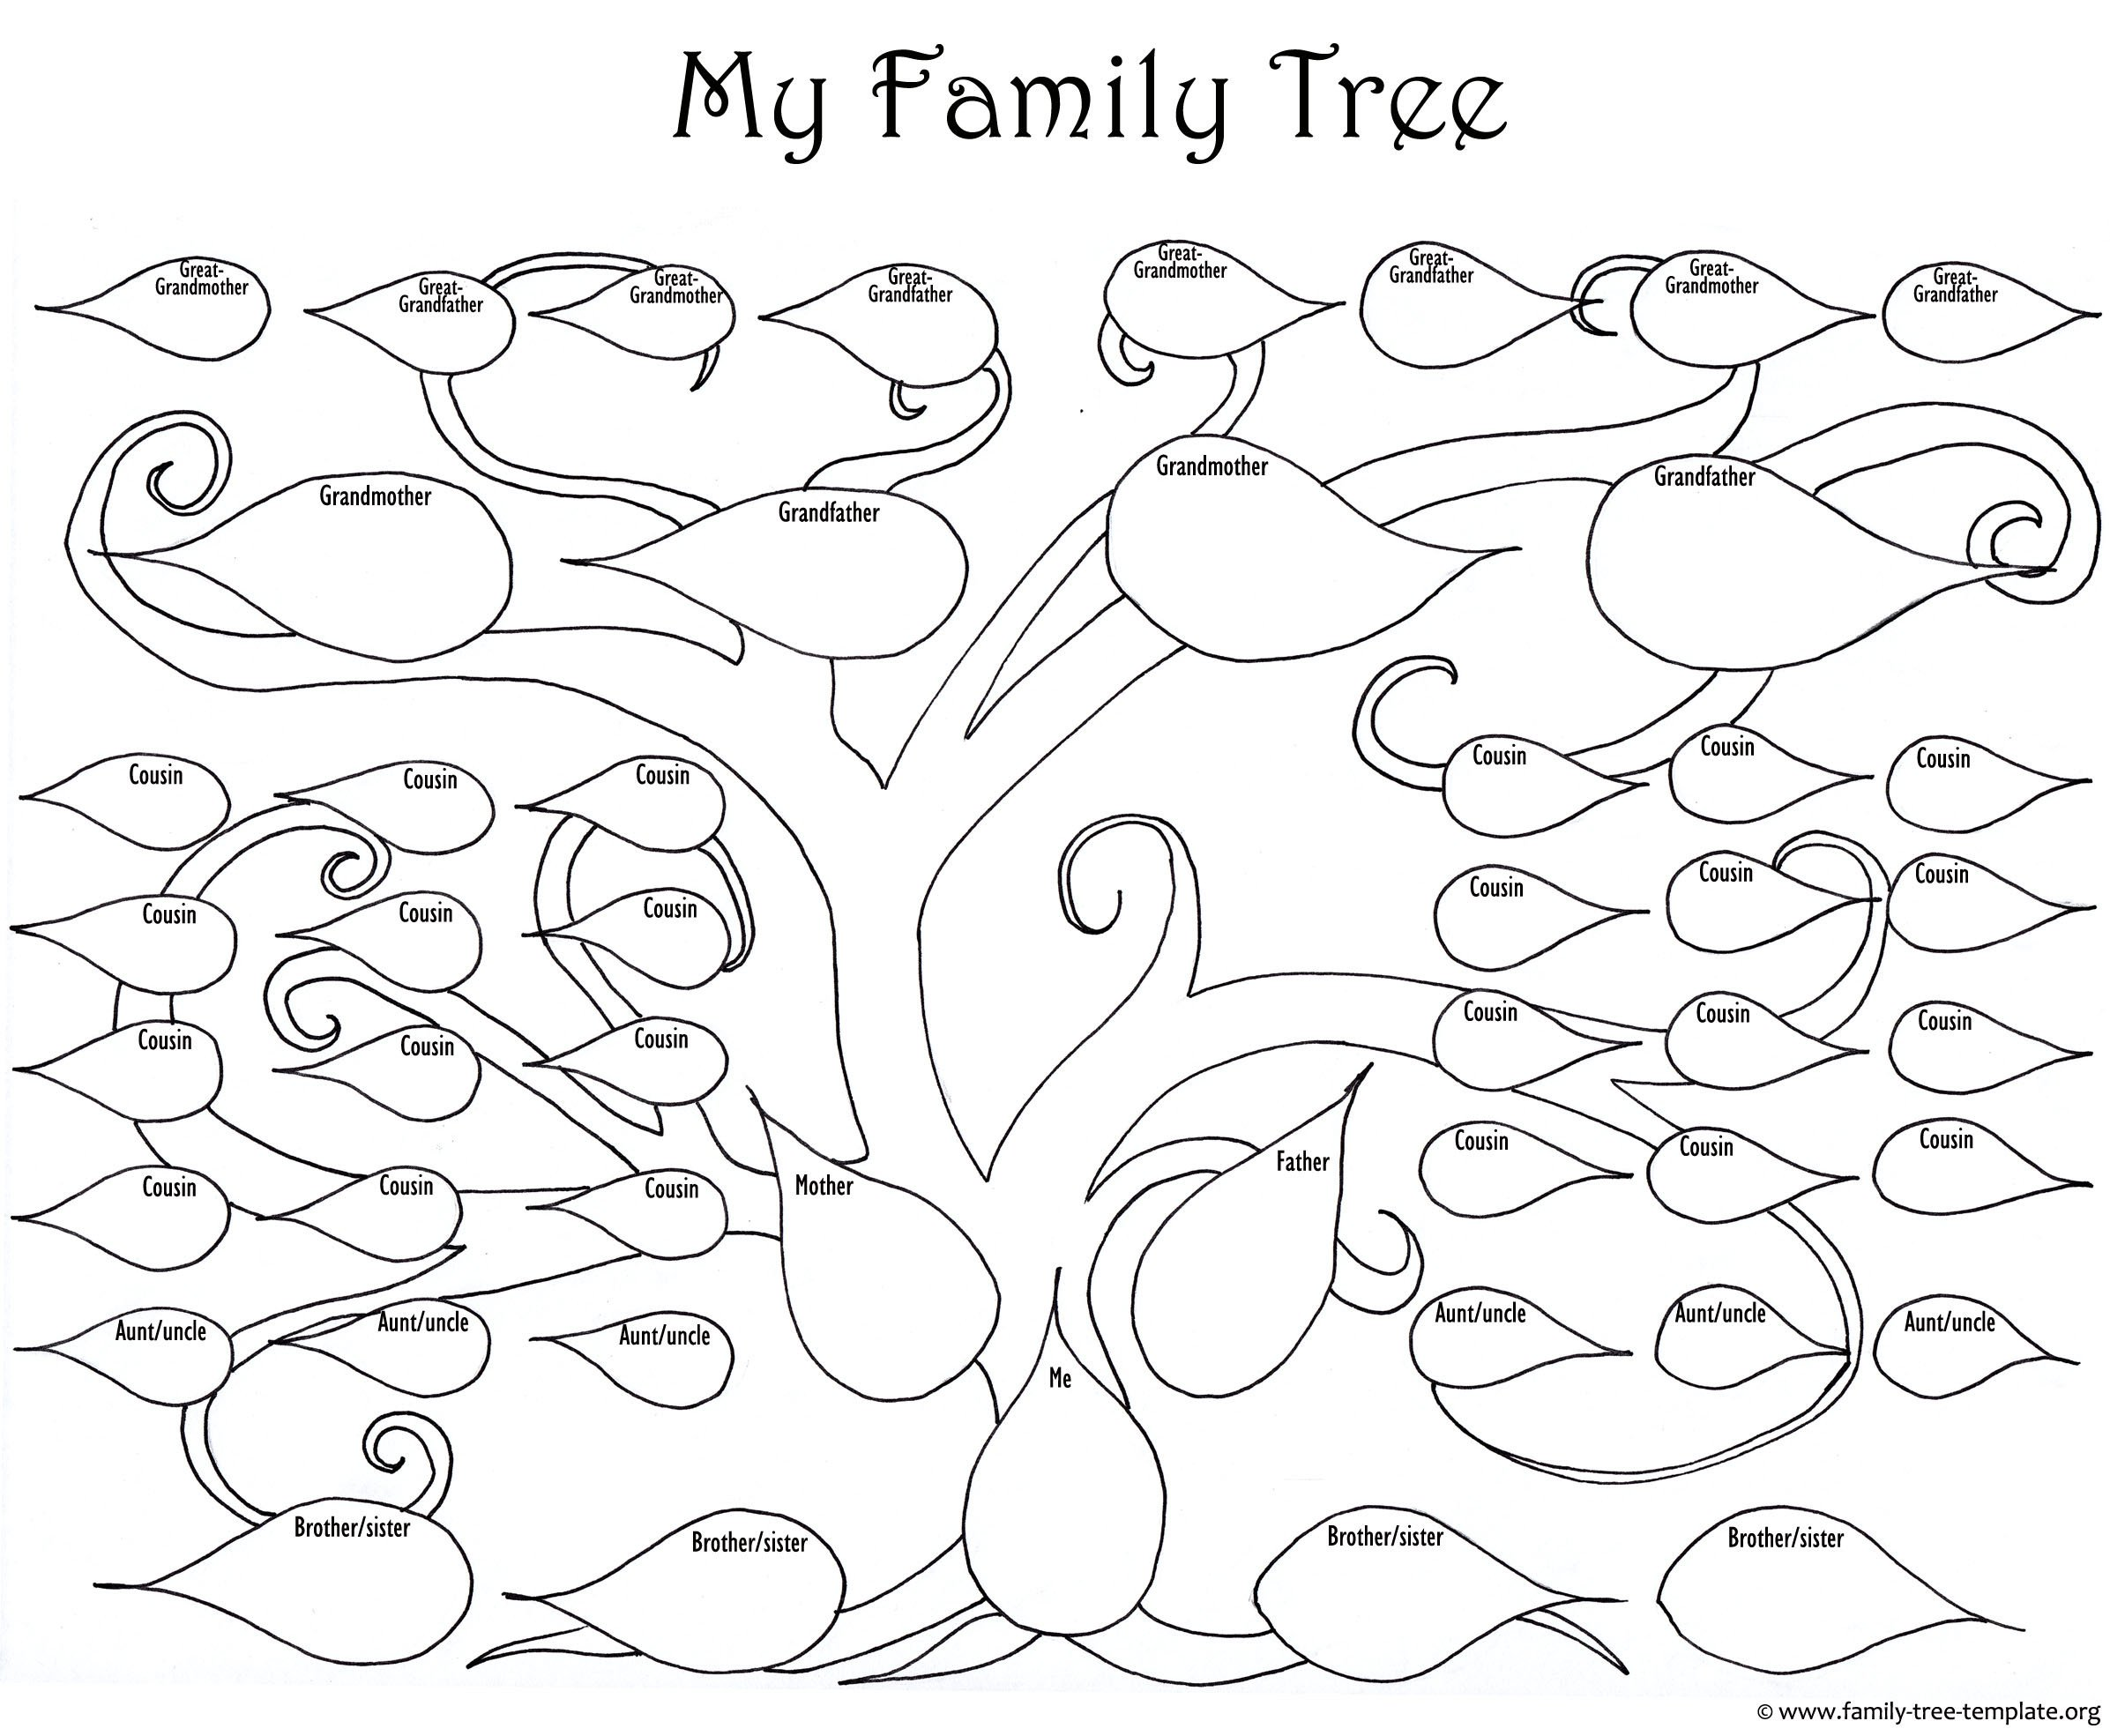 Family Tree with Pictures Template A Printable Blank Family Tree to Make Your Kids Genealogy